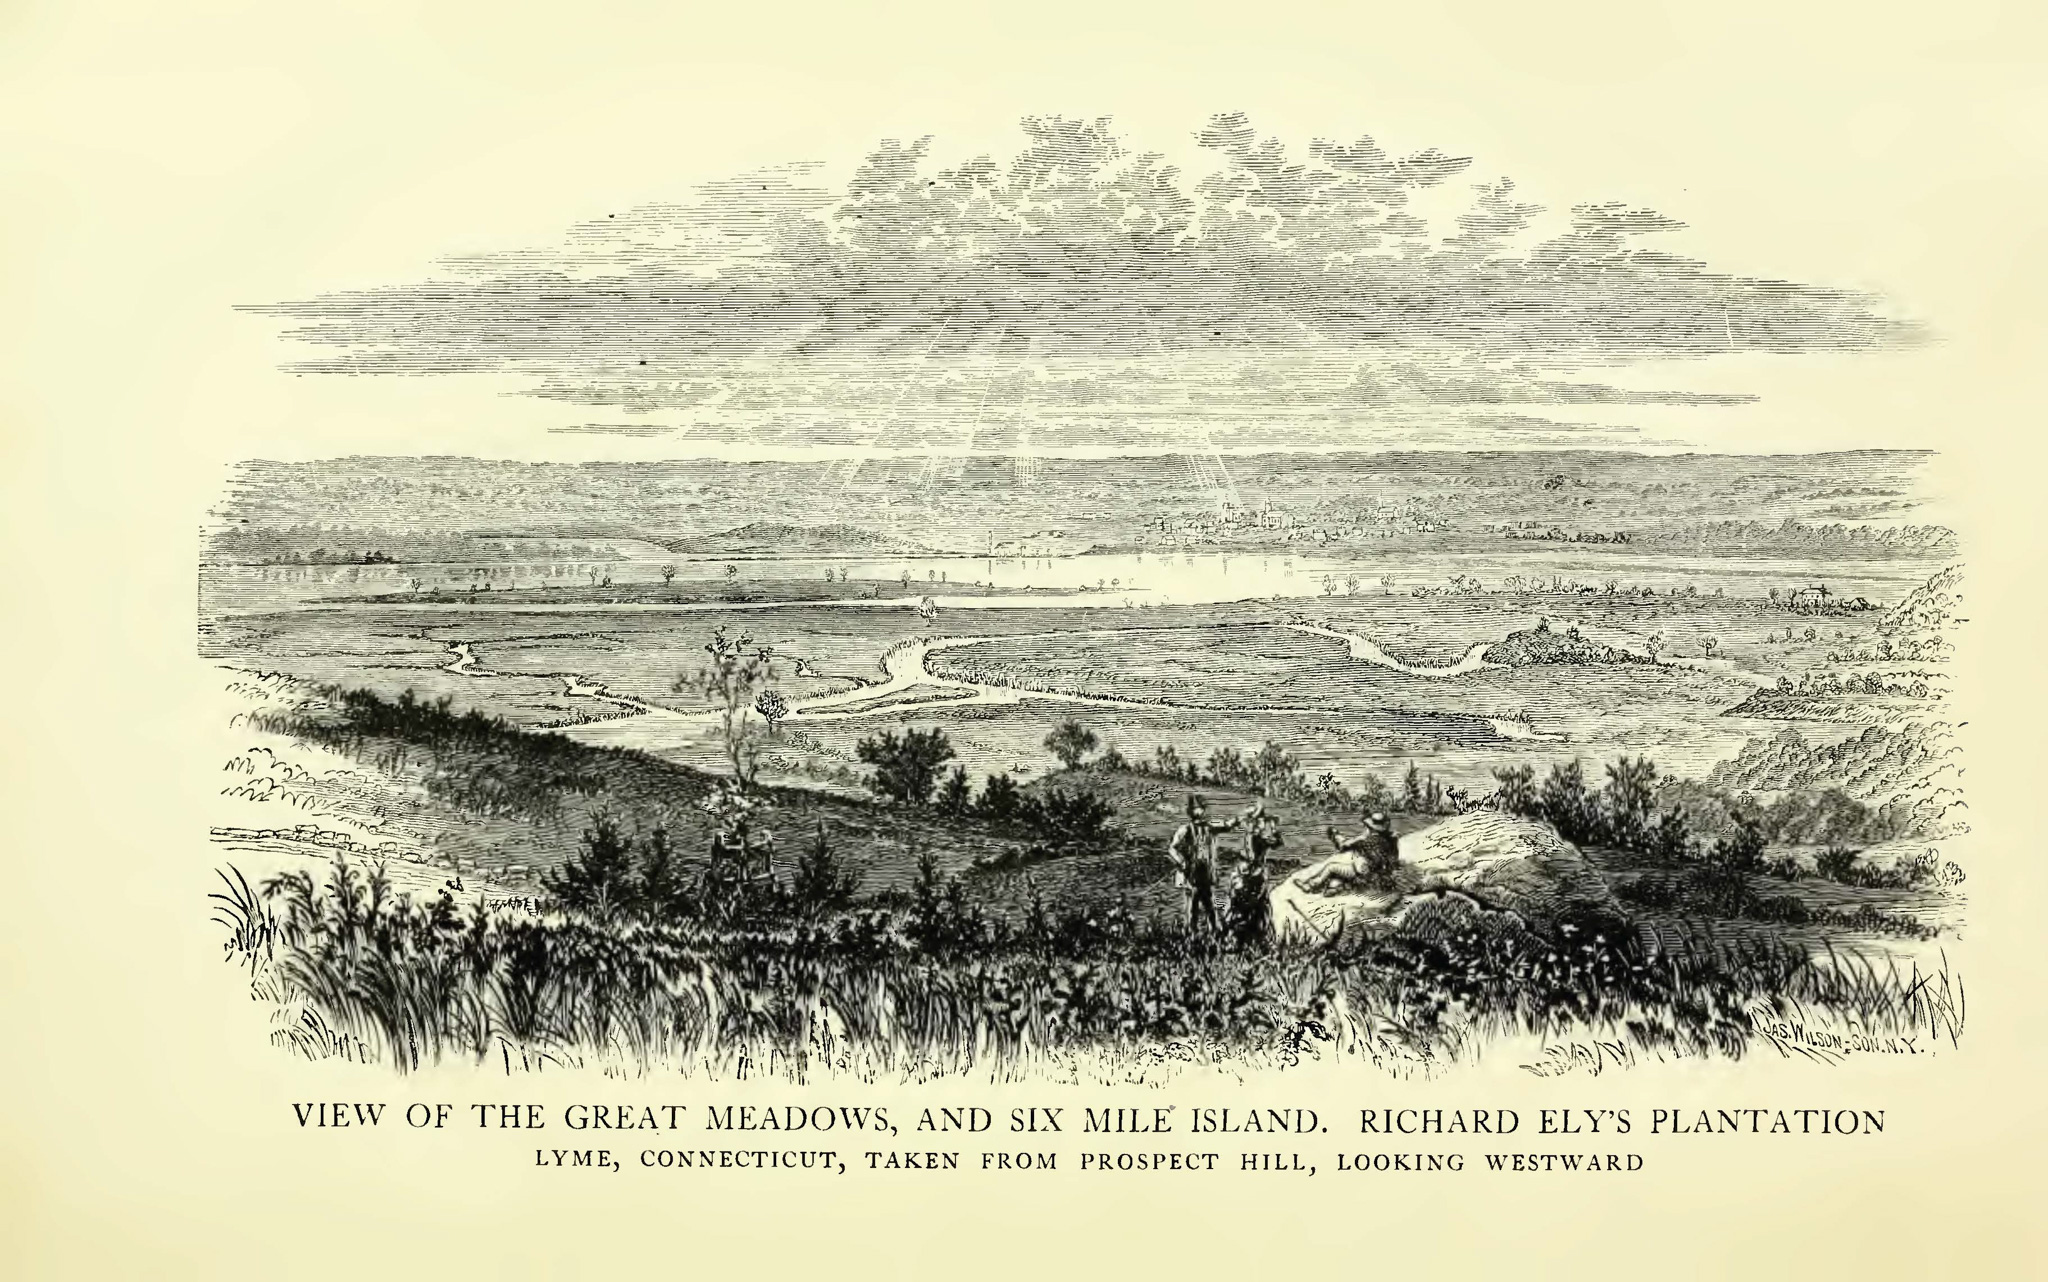 Richard Ely farm from The Ely Ancestry